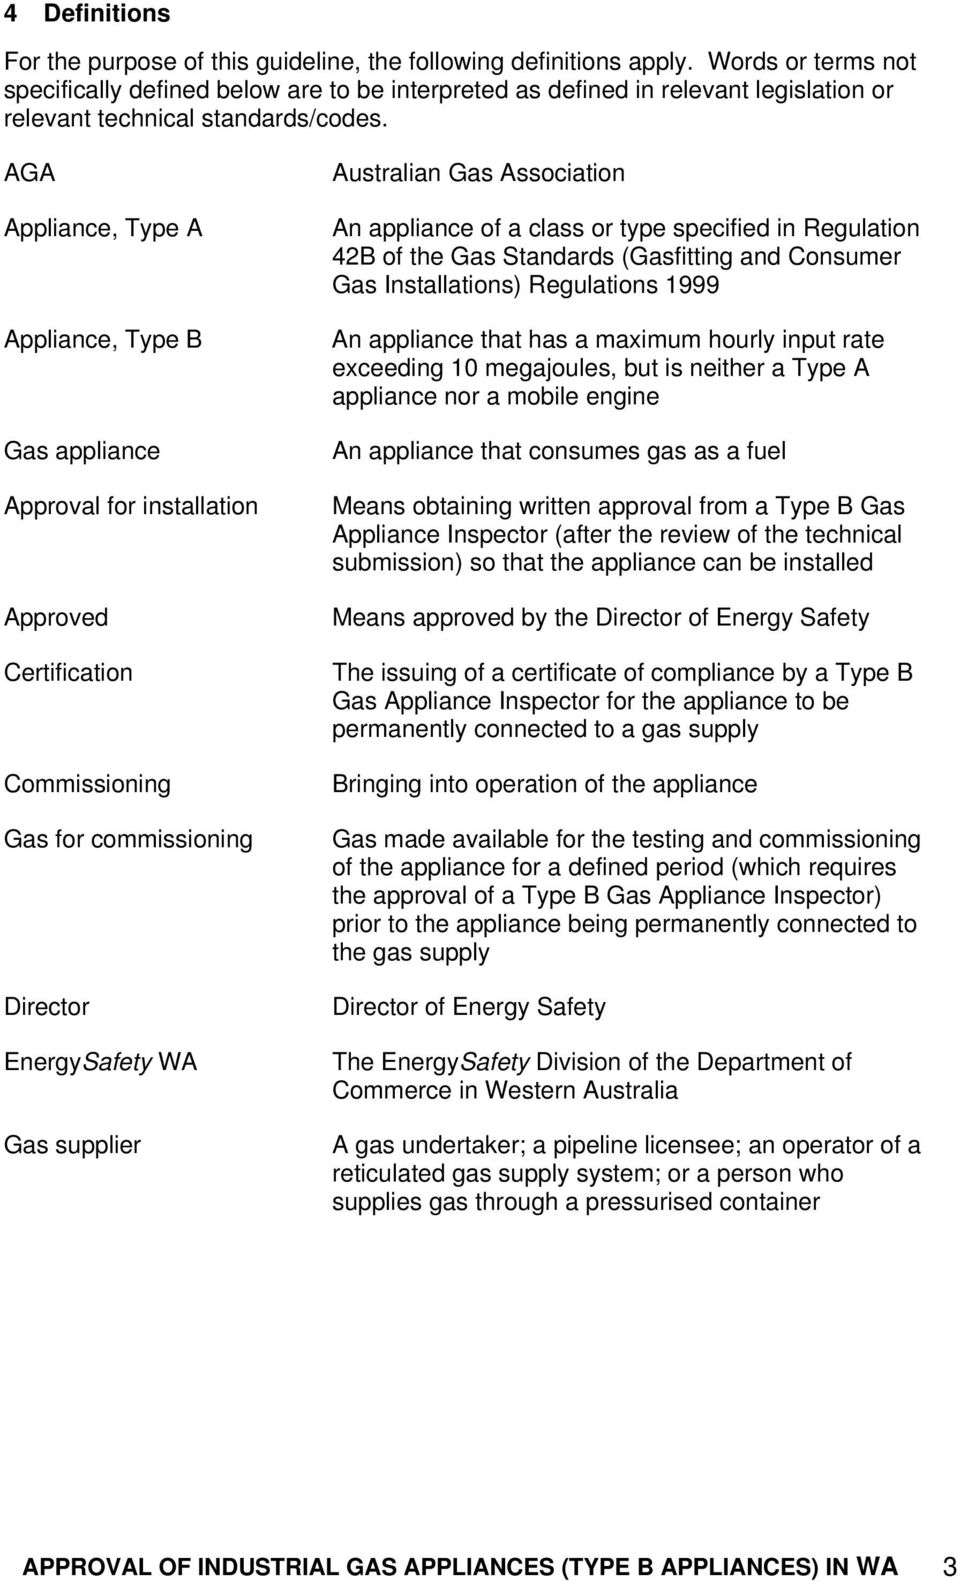 AGA Appliance, Type A Appliance, Type B Gas appliance Approval for installation Approved Certification Commissioning Gas for commissioning Director EnergySafety WA Gas supplier Australian Gas